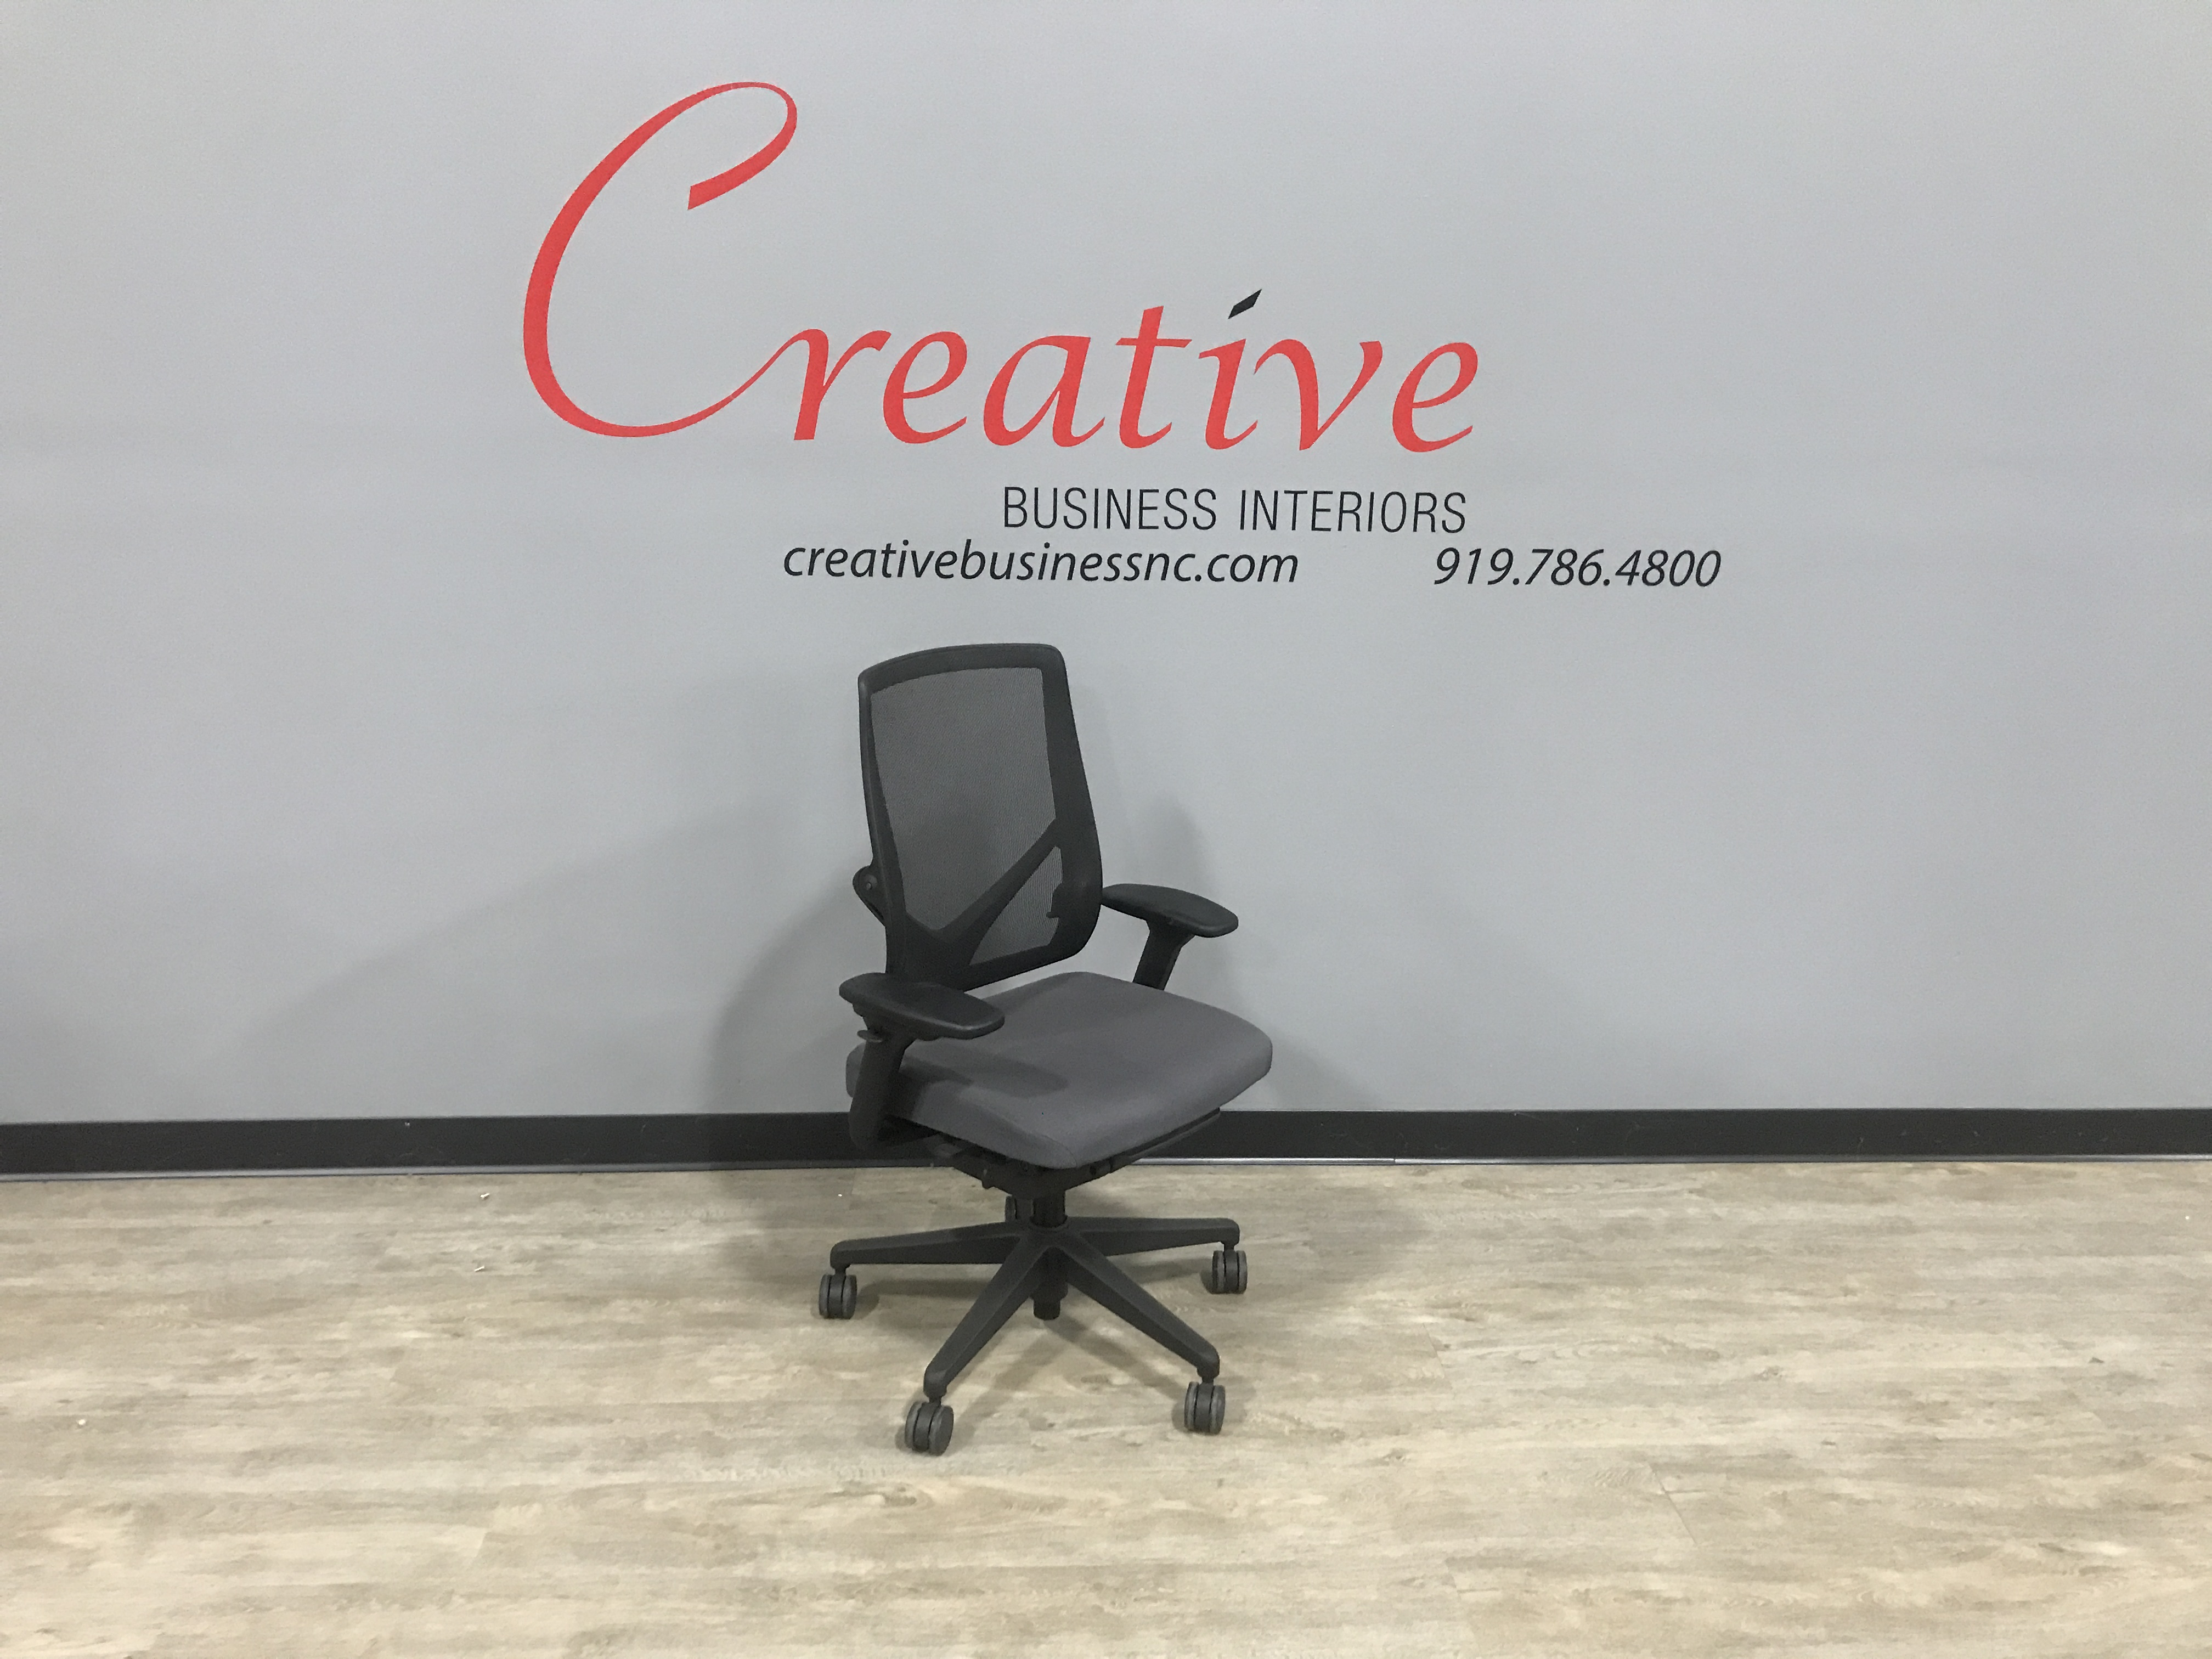 allsteel task chair reclining hospital relate st 181034 creative business